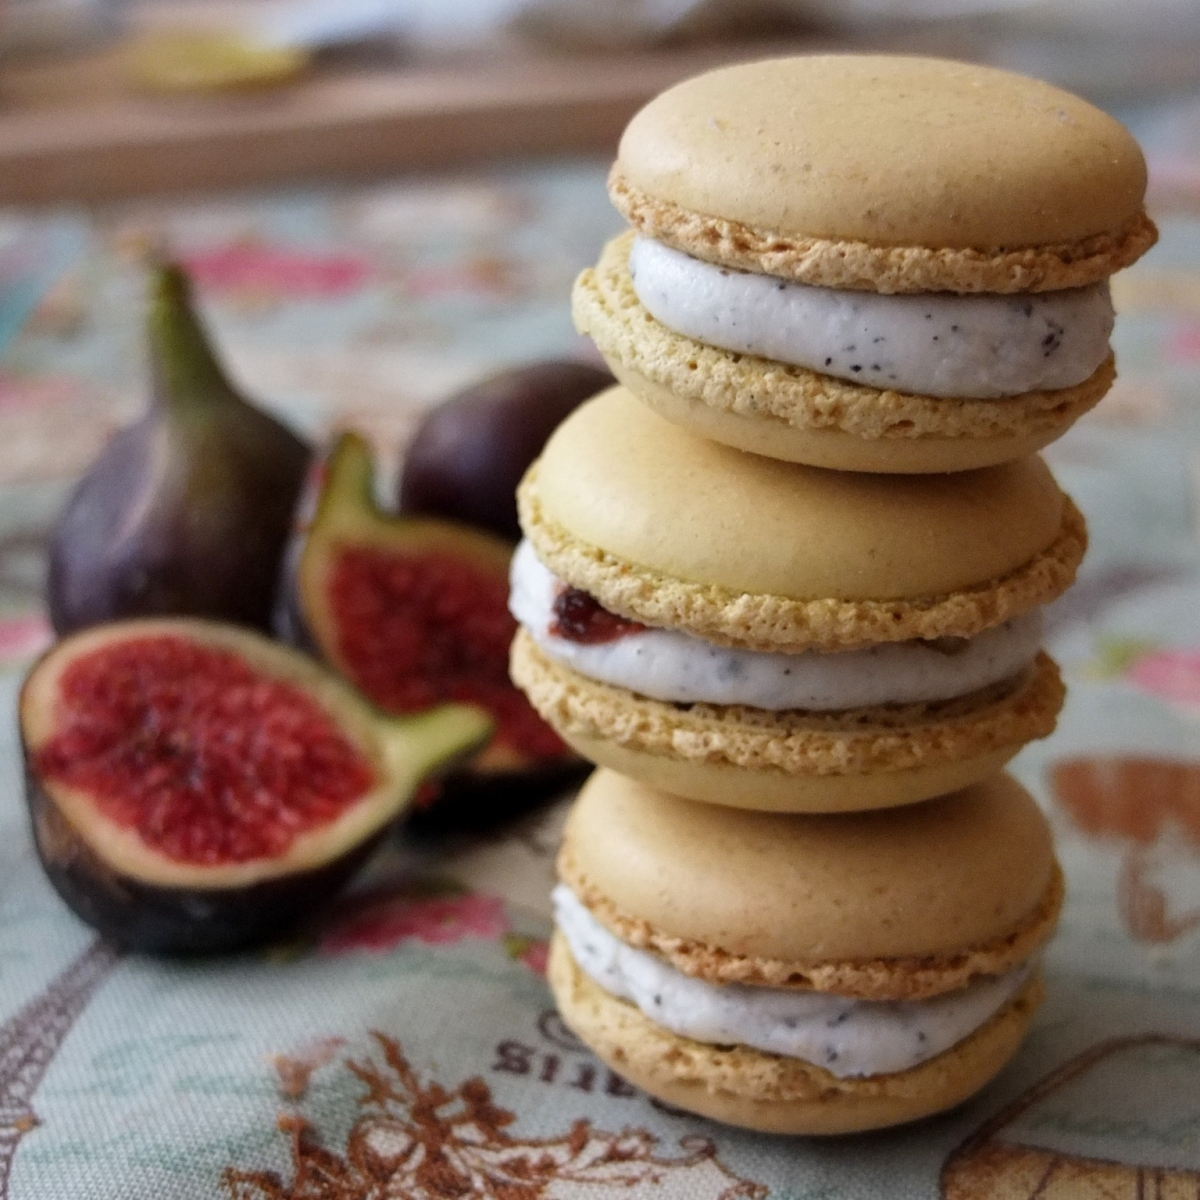 Savoury goats' cheese macarons with fig, walnut and black sesame!